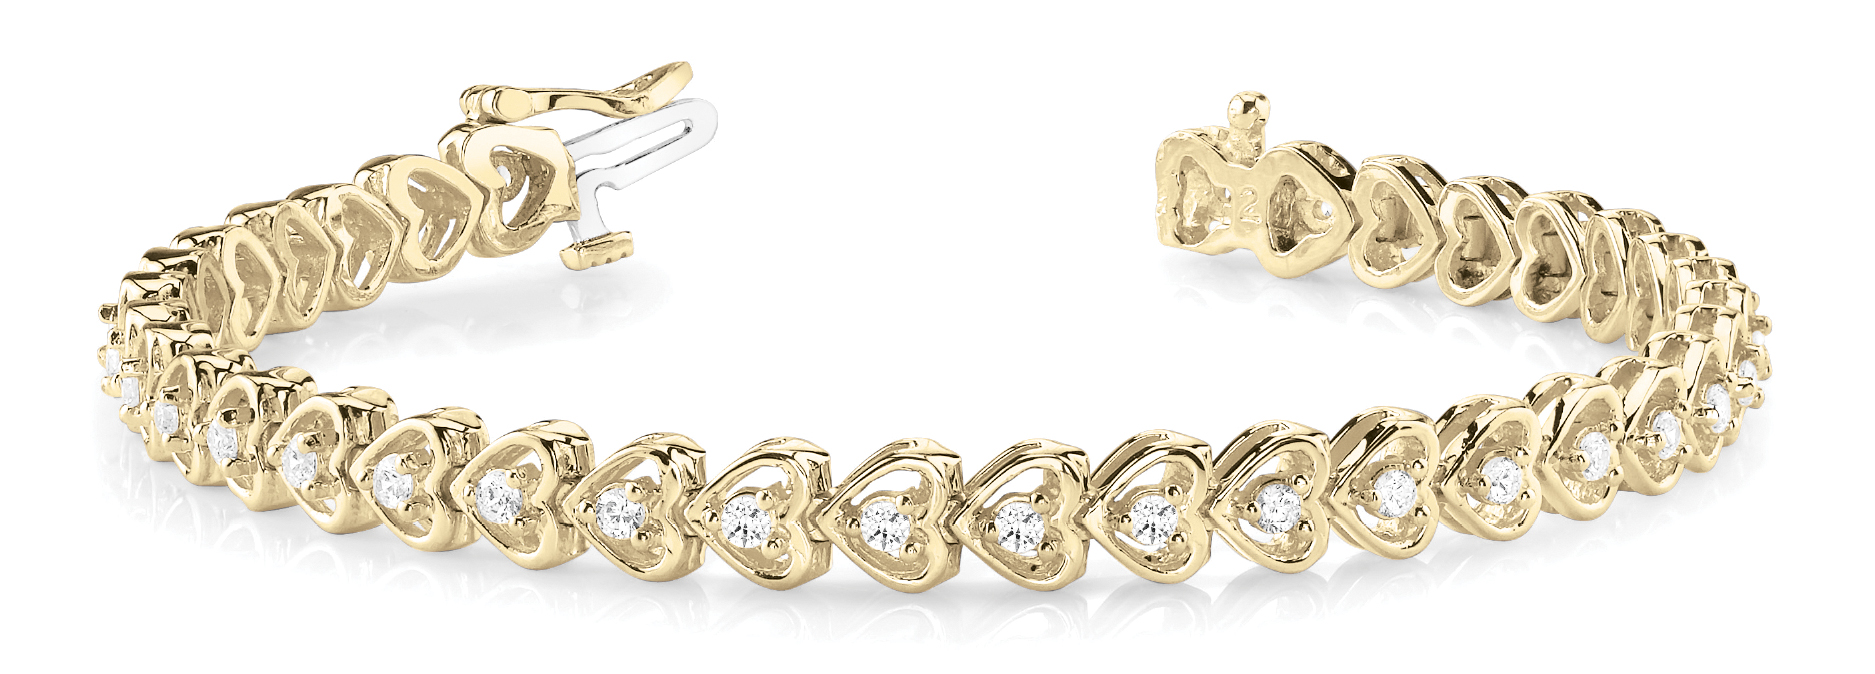 1.25 Carat Round Diamond Heart Link Bracelet Yellow Gold